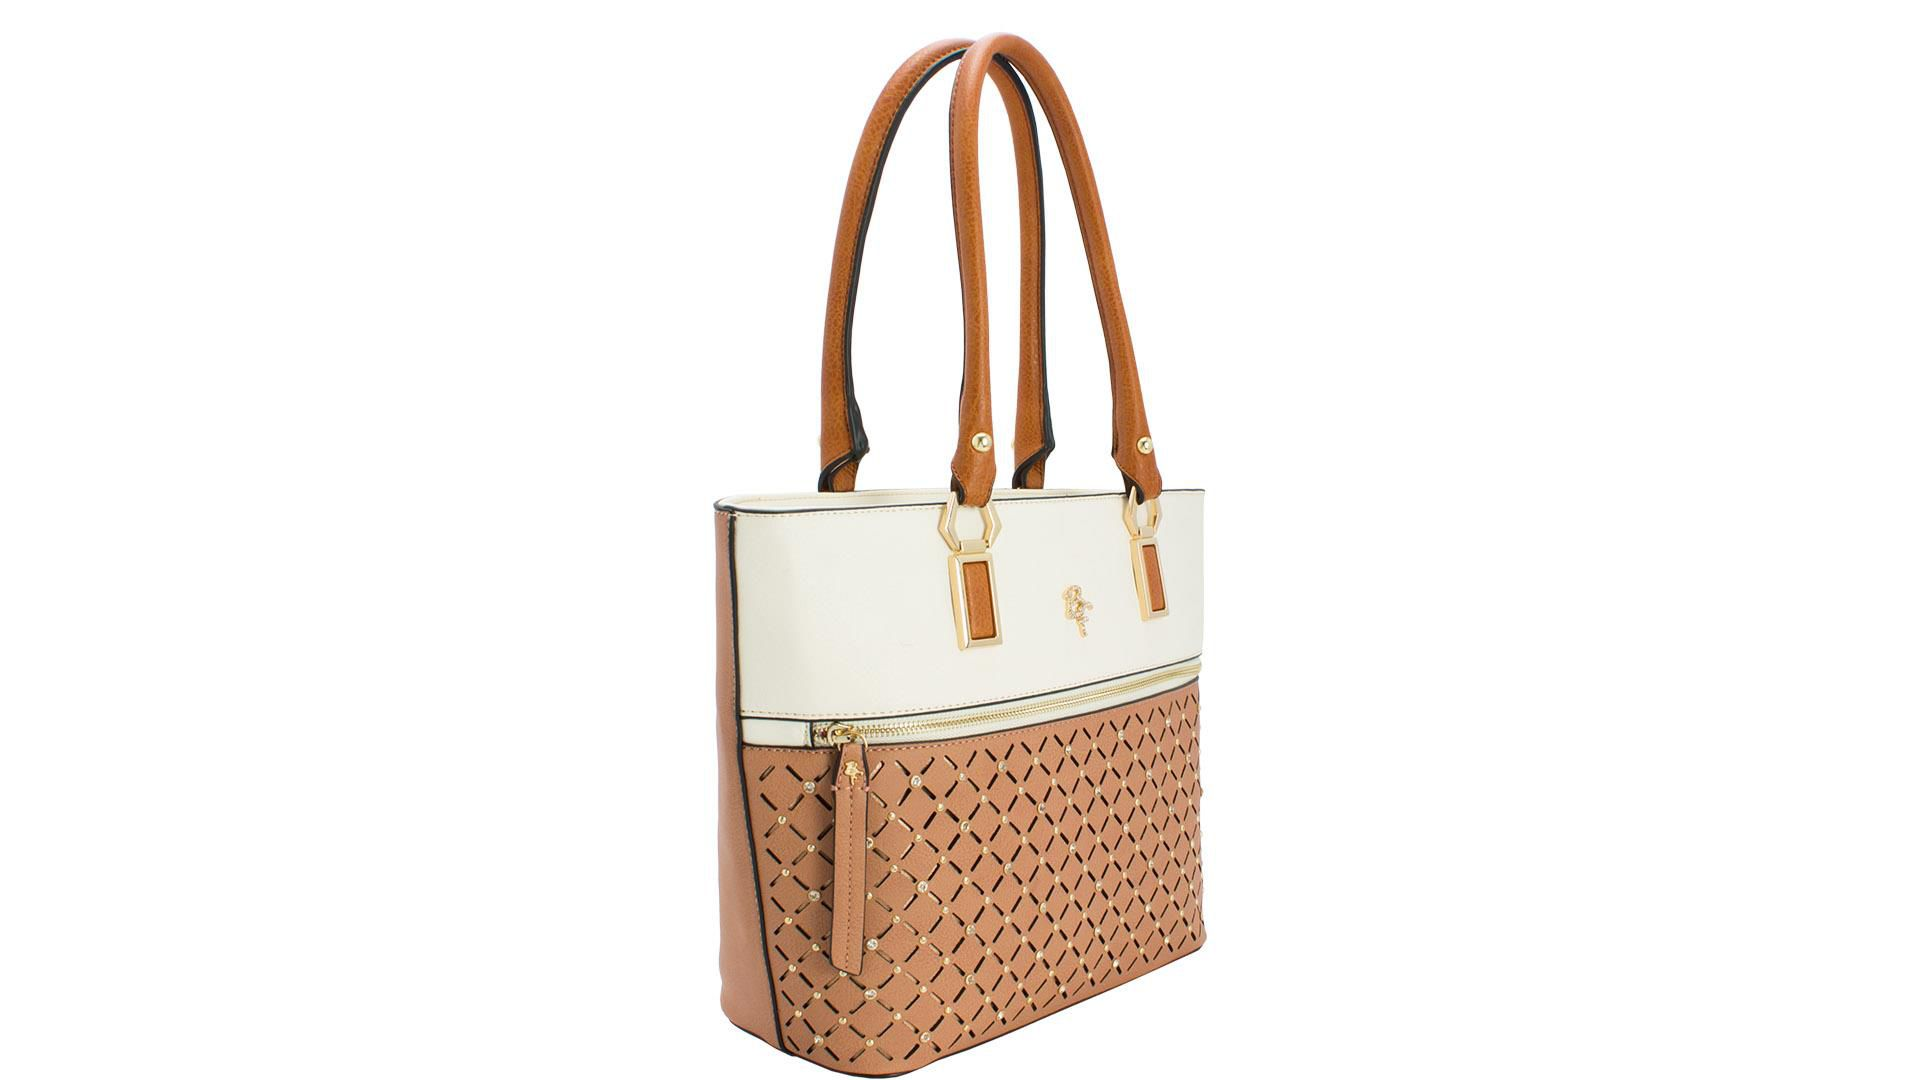 BOLSA 32.82146 1 BE FOREVER TAUPE/CREME/NEW MALTE 18367 OK